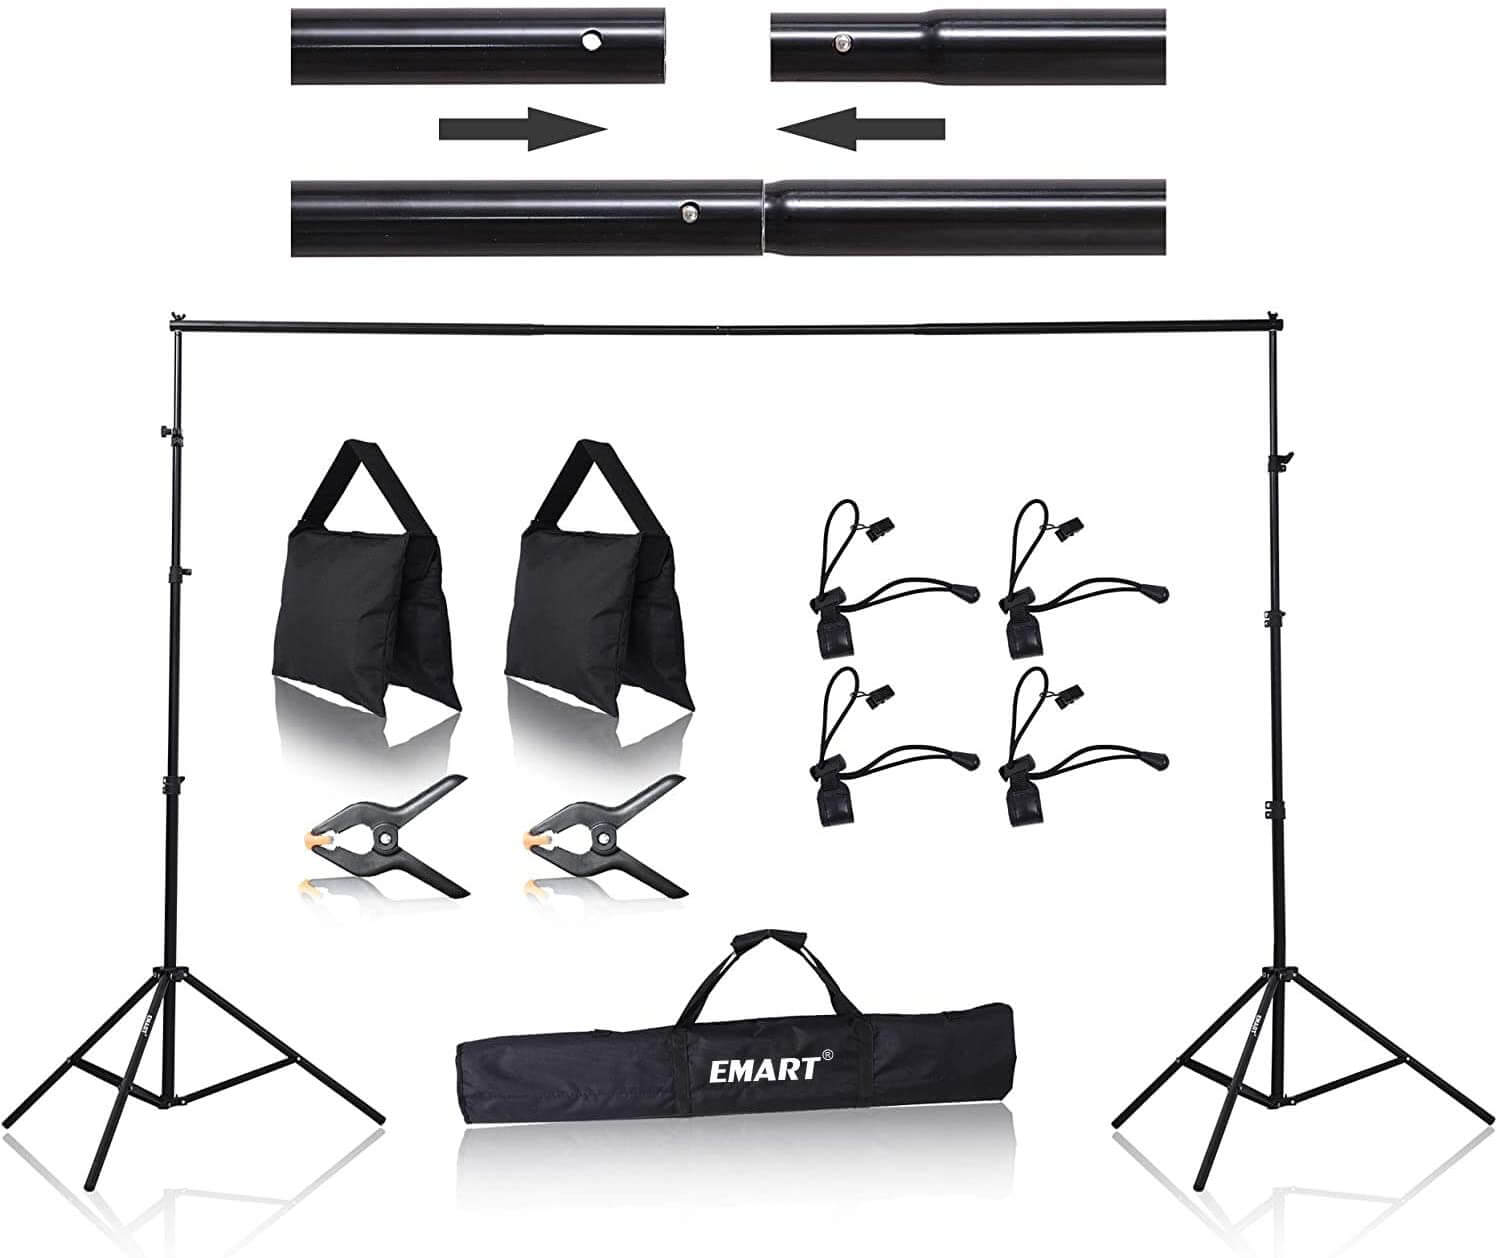 Emart 8.5 x 10 ft. Backdrop Stand